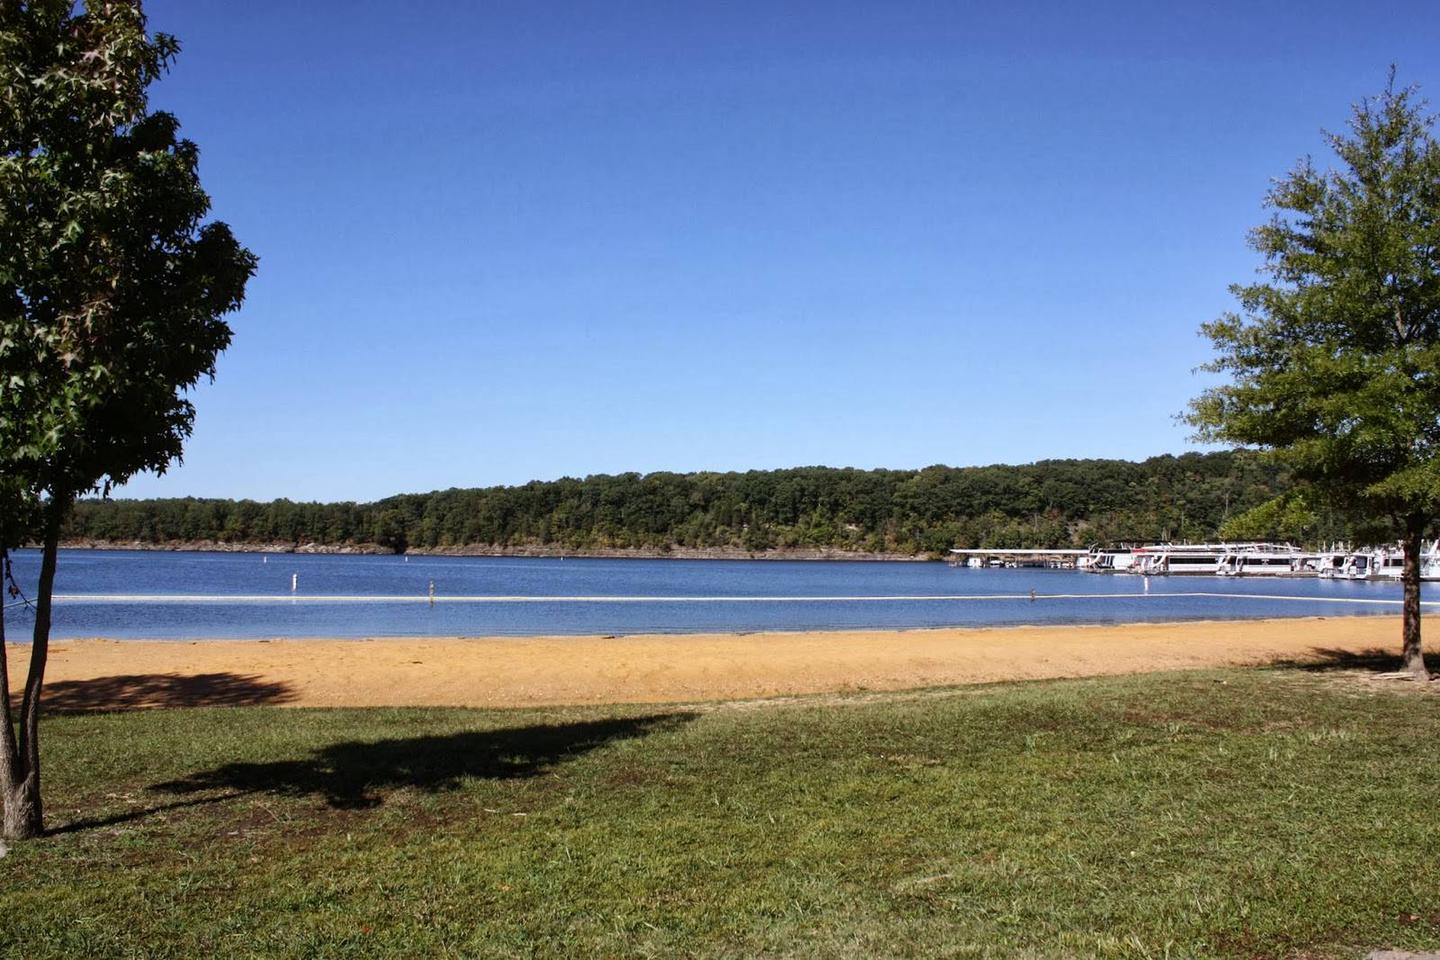 Holmes Bend BeachBeach located near the marina, about 1 mile from the campground